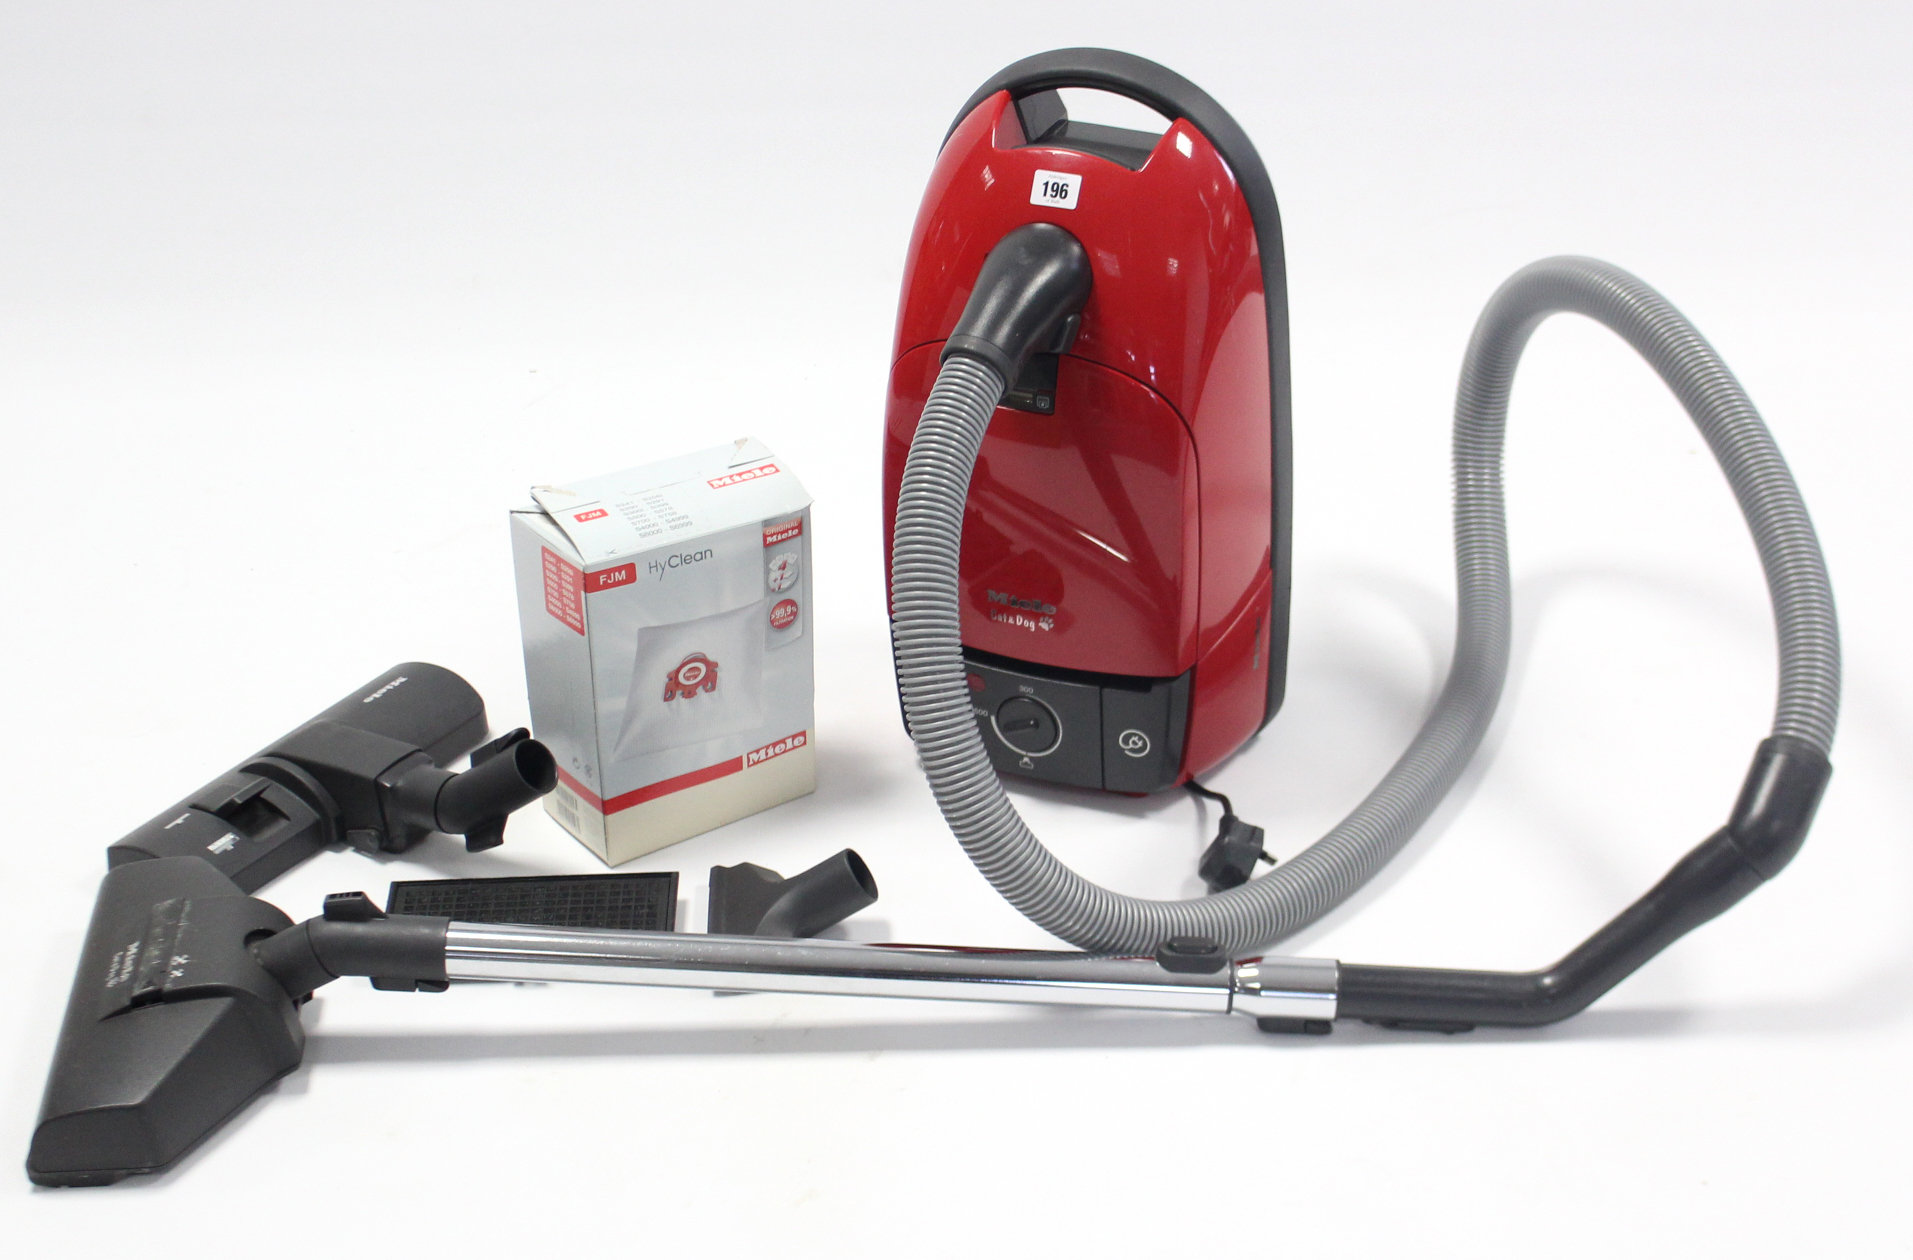 Lot 196 - A Miele cylinder vacuum cleaner.